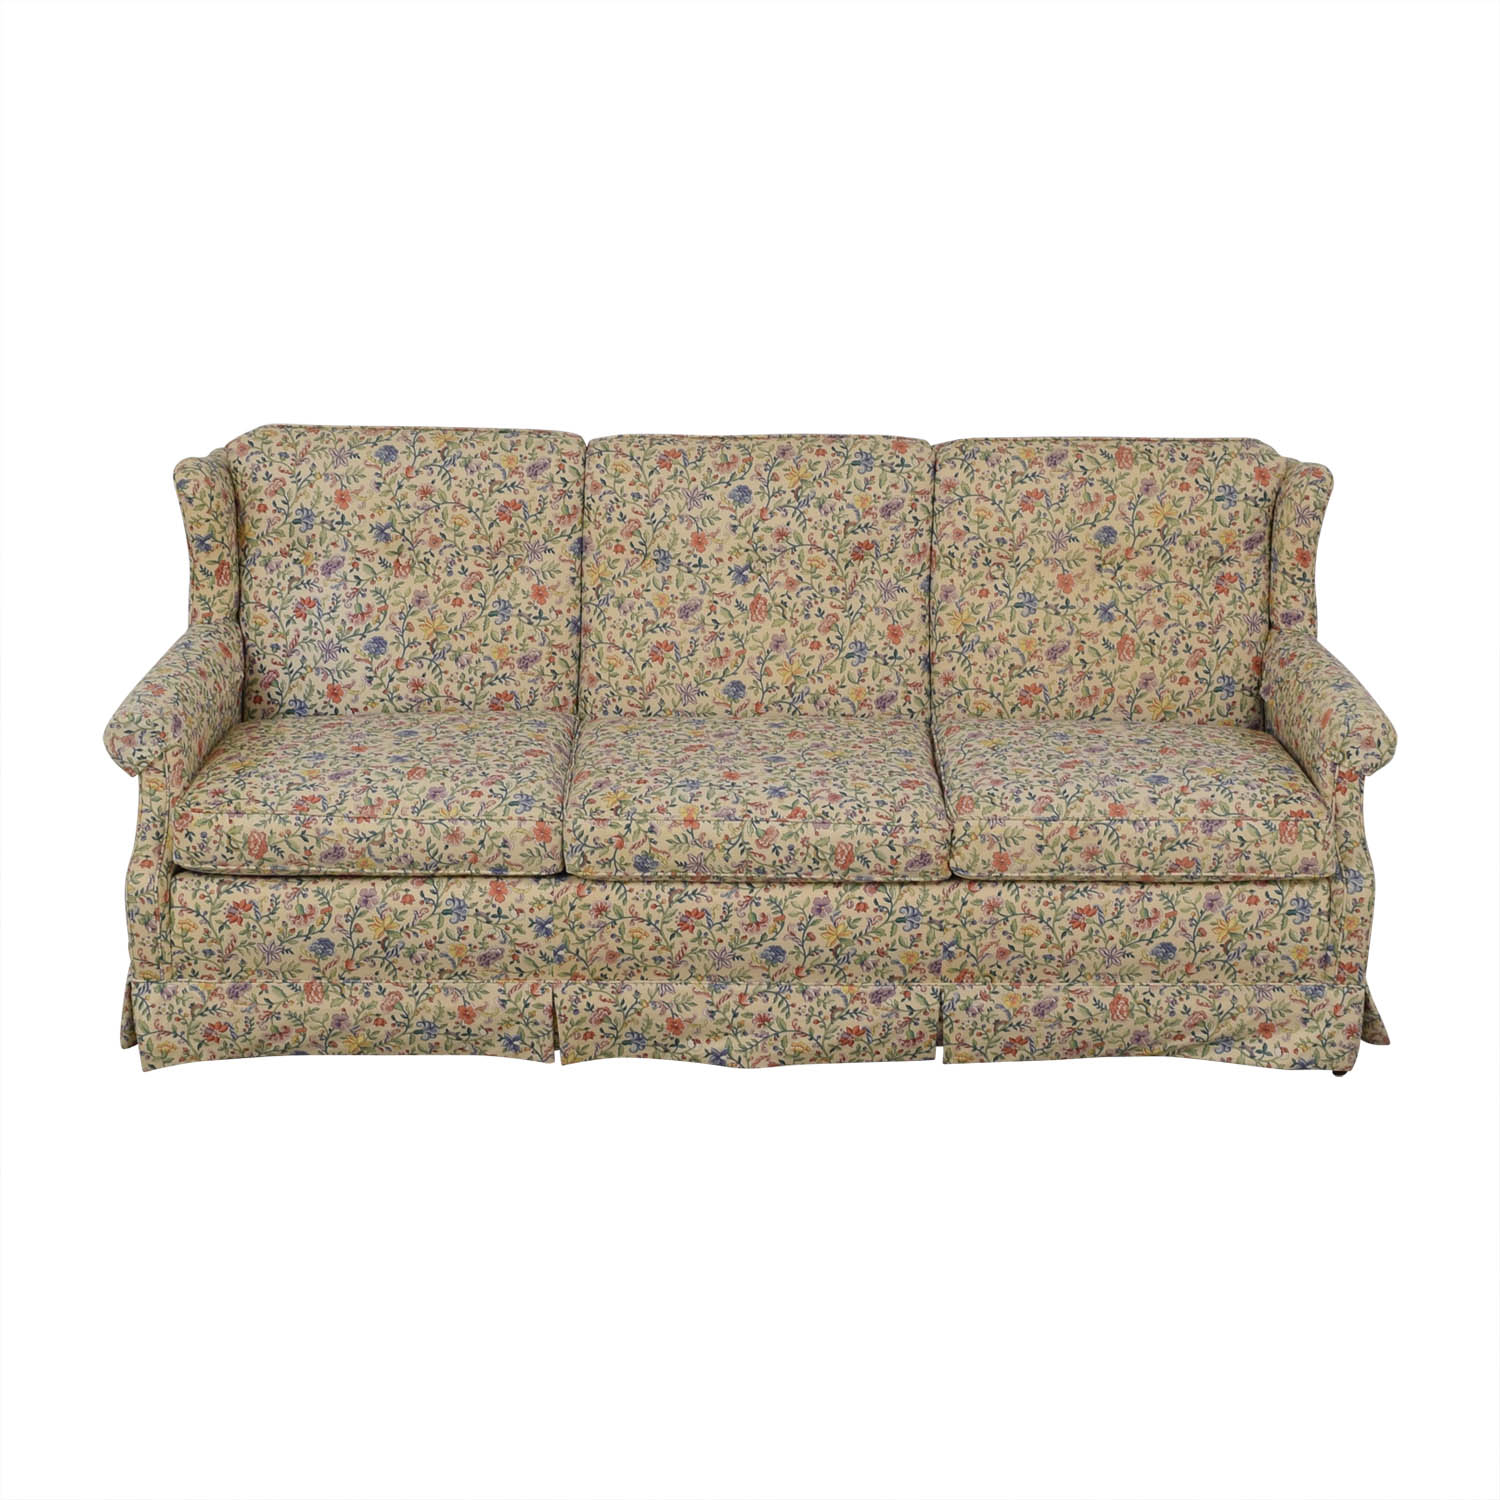 86% Off – Ethan Allen Ethan Allen Floral Three Cushion Throughout Ethan Allen Sofas And Chairs (View 12 of 15)